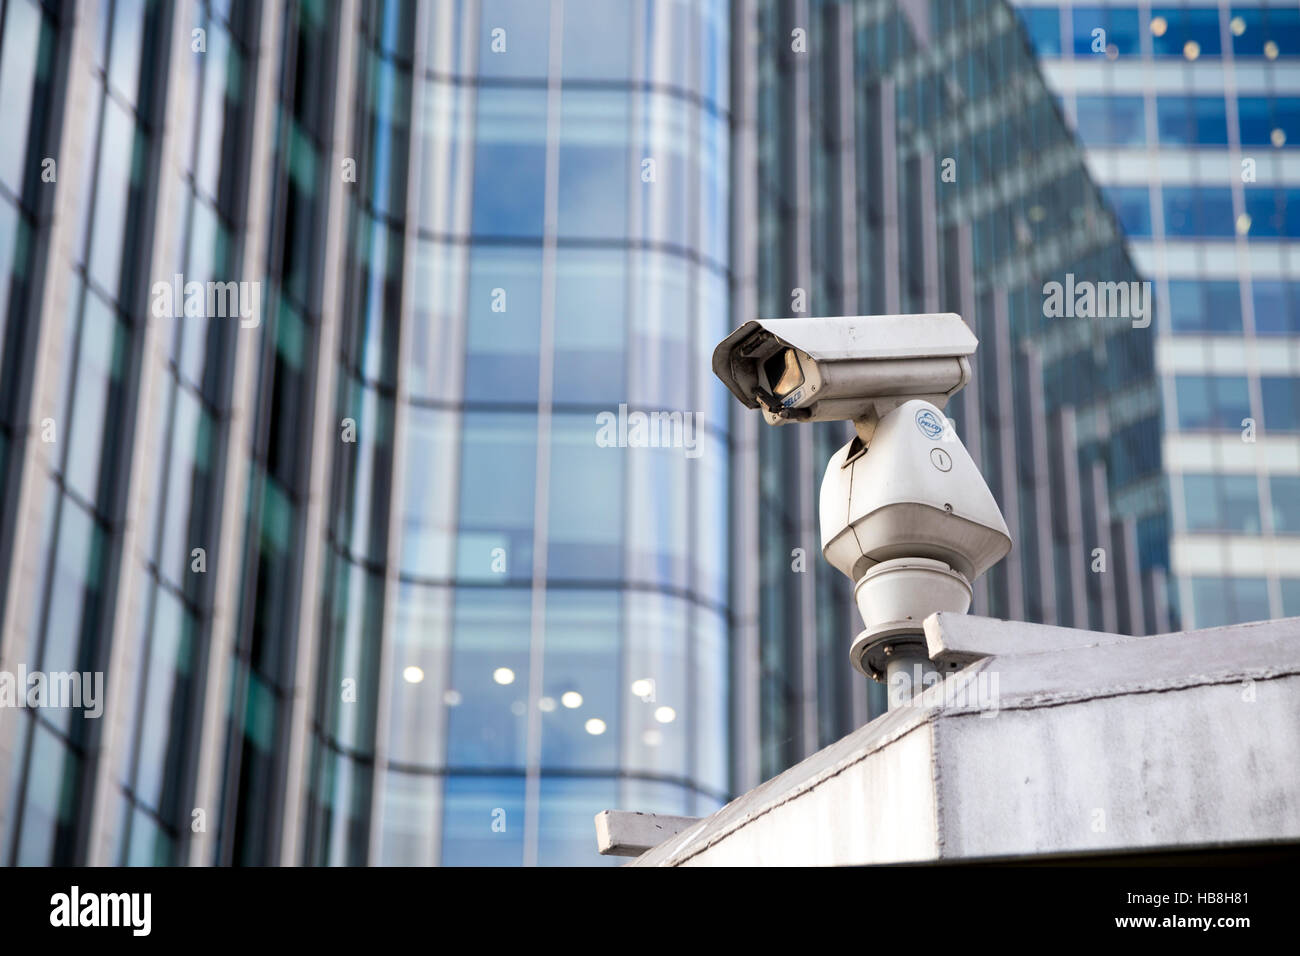 A CCTV surveillance camera with modern skyscrapers in the background Stock Photo